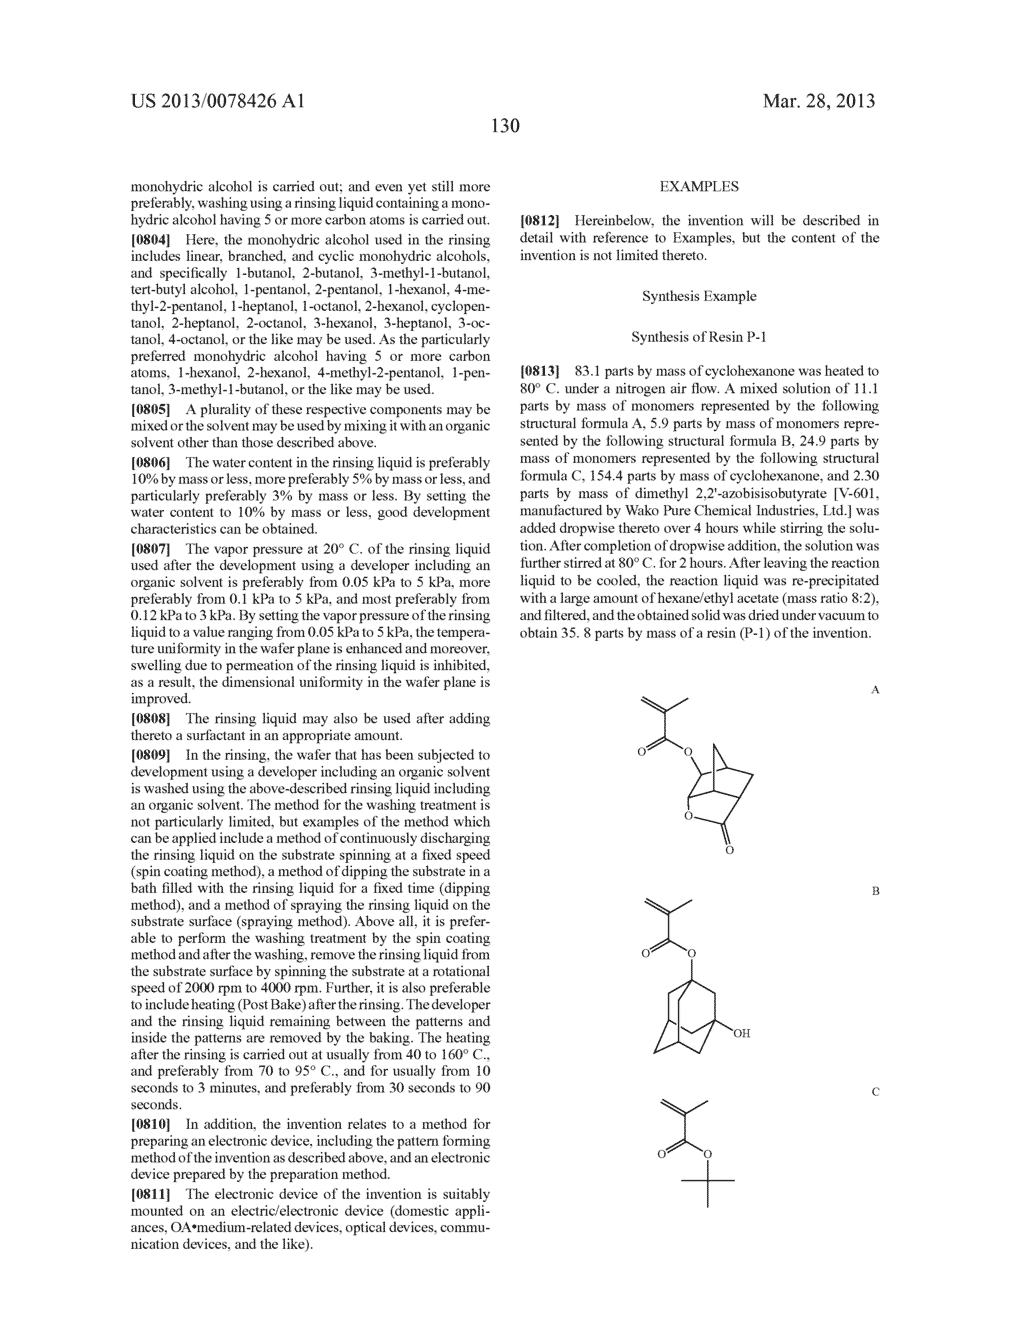 ACTINIC RAY-SENSITIVE OR RADIATION-SENSITIVE RESIN COMPOSITION, AND RESIST     FILM, PATTERN FORMING METHOD, METHOD FOR PREPARING ELECTRONIC DEVICE, AND     ELECTRONIC DEVICE, EACH USING THE SAME - diagram, schematic, and image 131